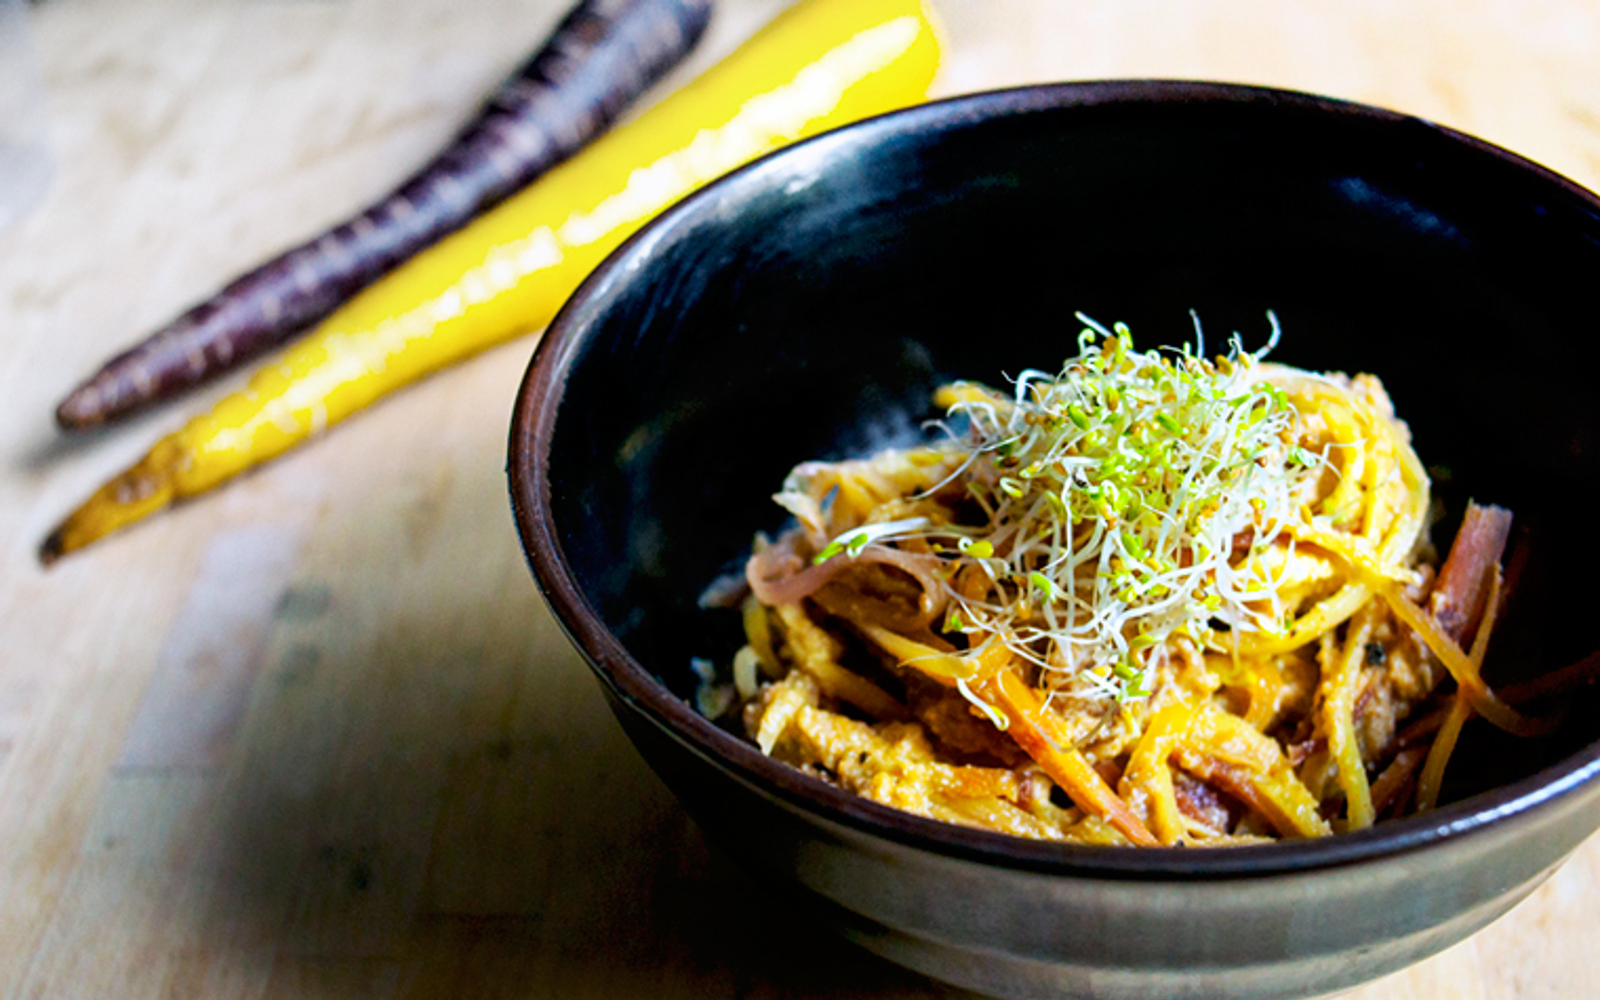 Heirloom Carrot Pasta With a Sunflower Cheese Sauce